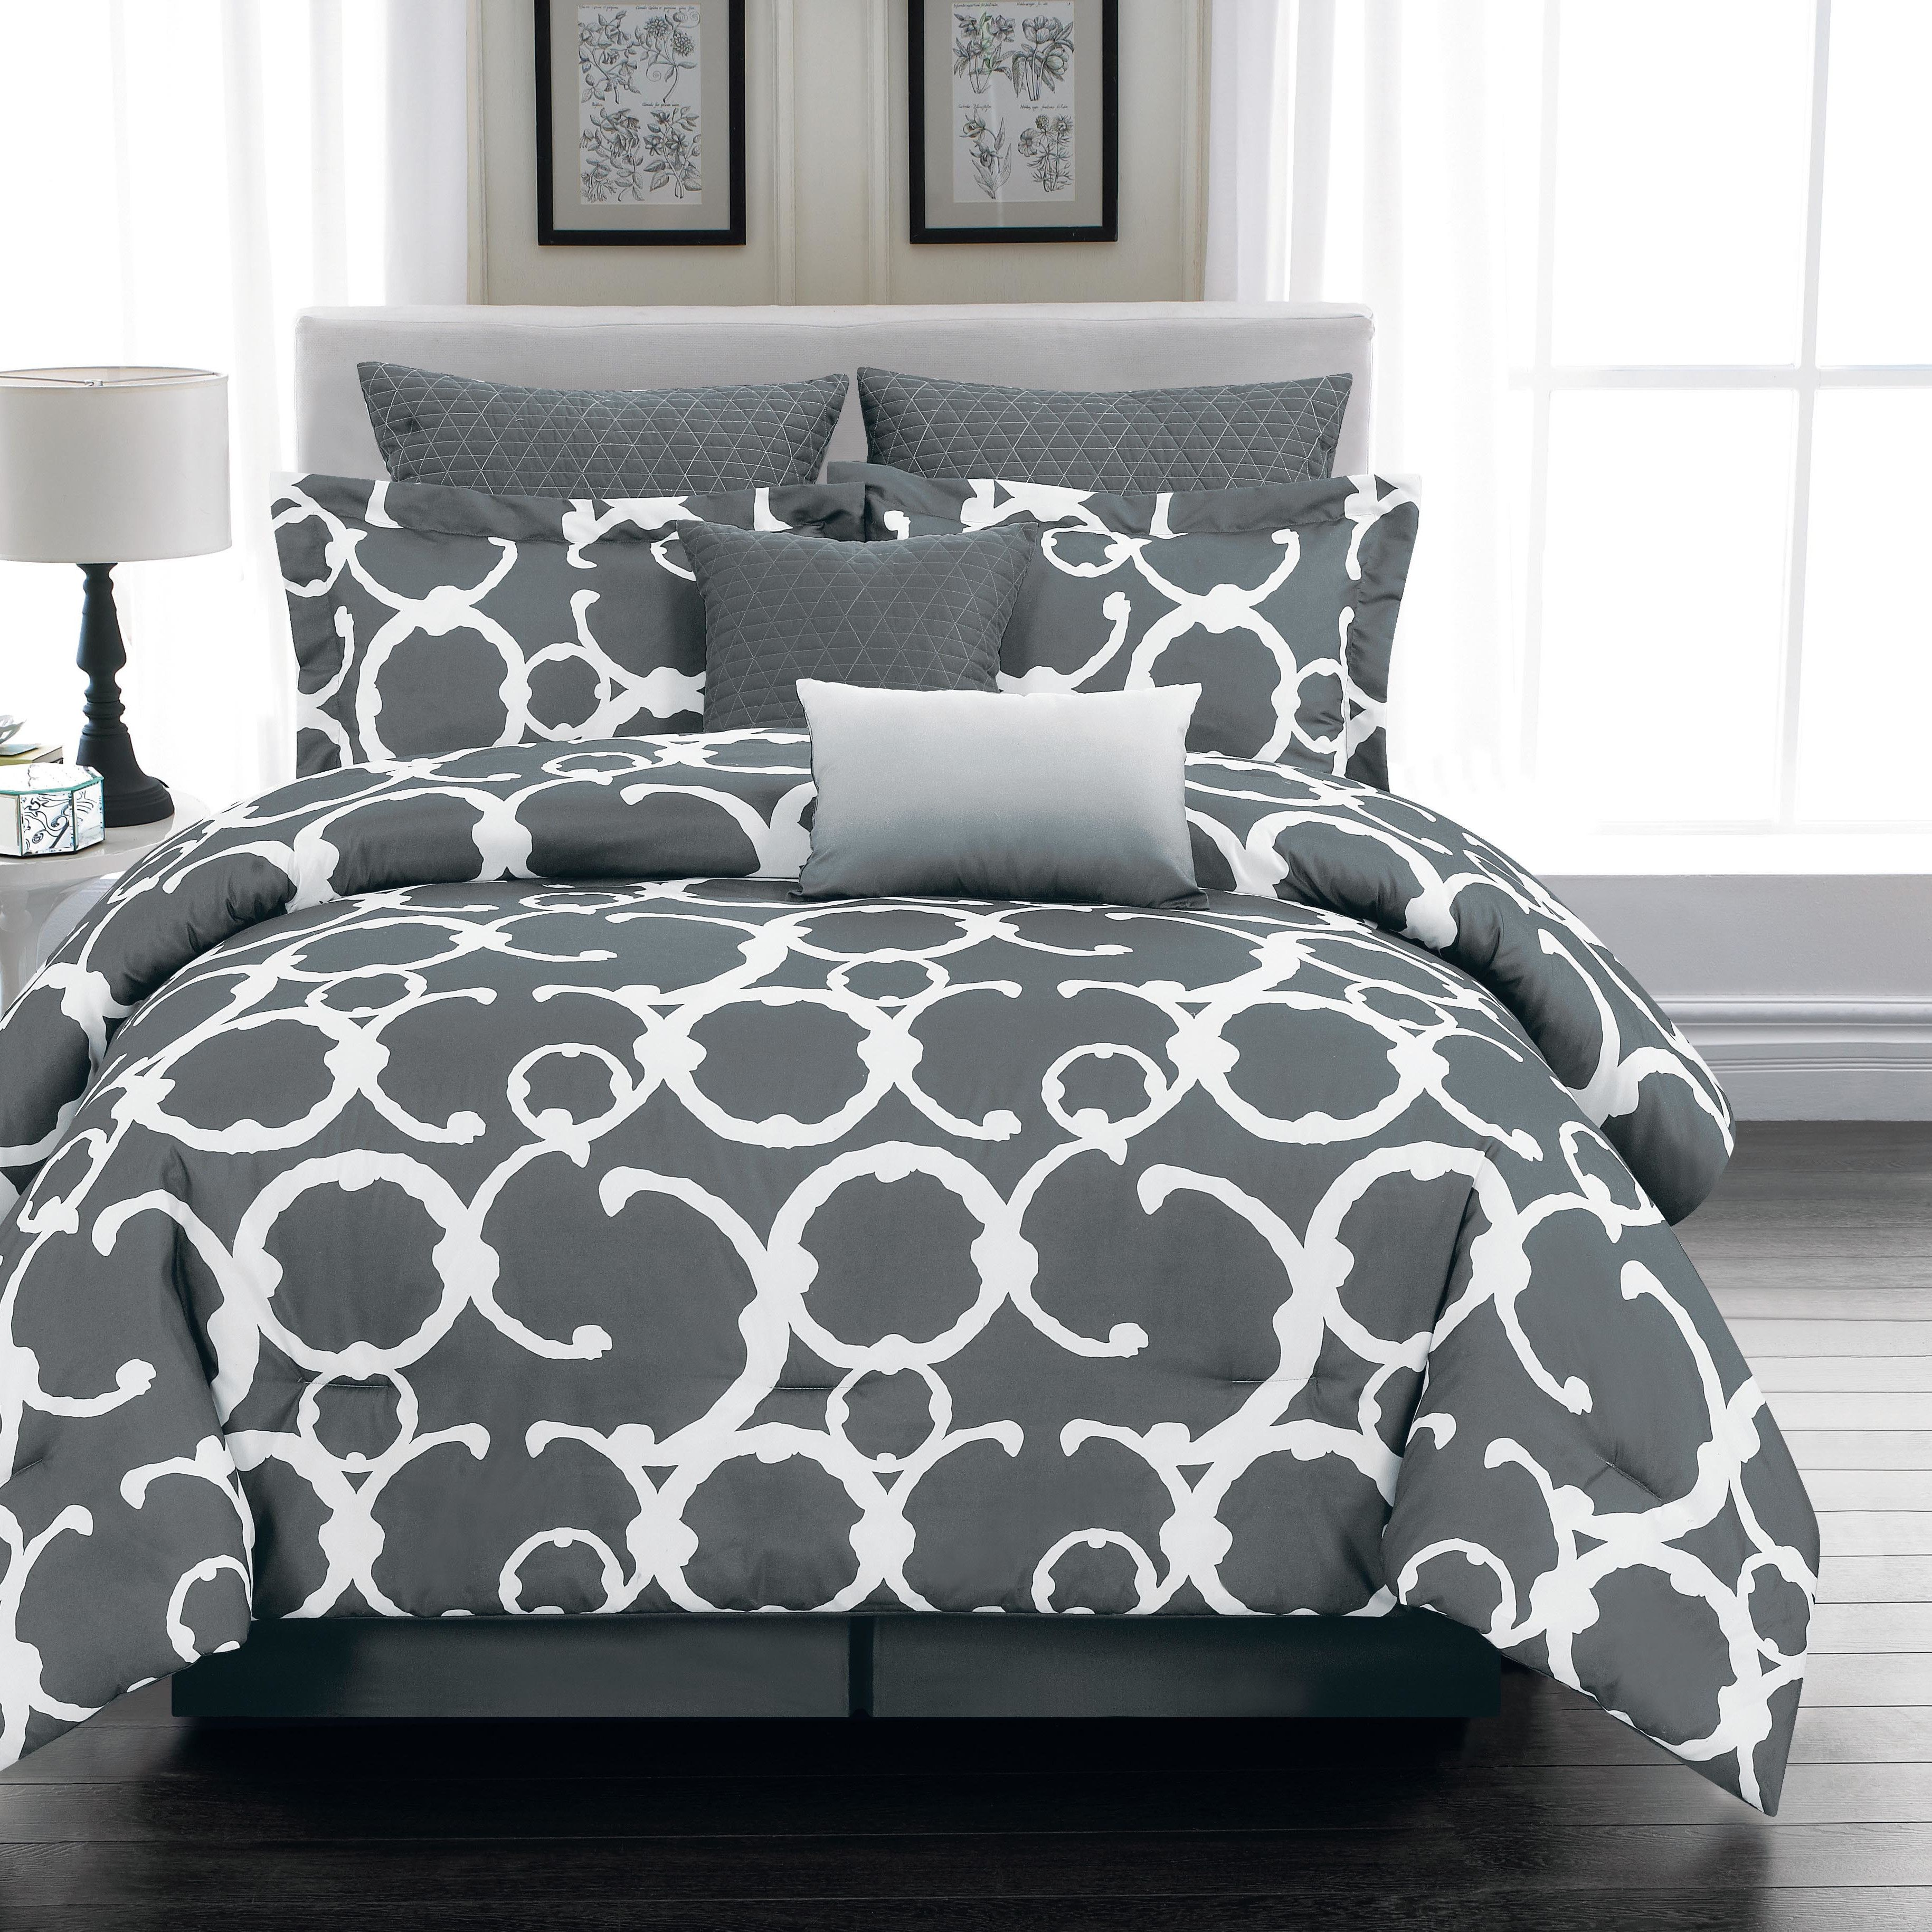 choose beds pertaining king comforter comforters sets for bed to set bedroom twin